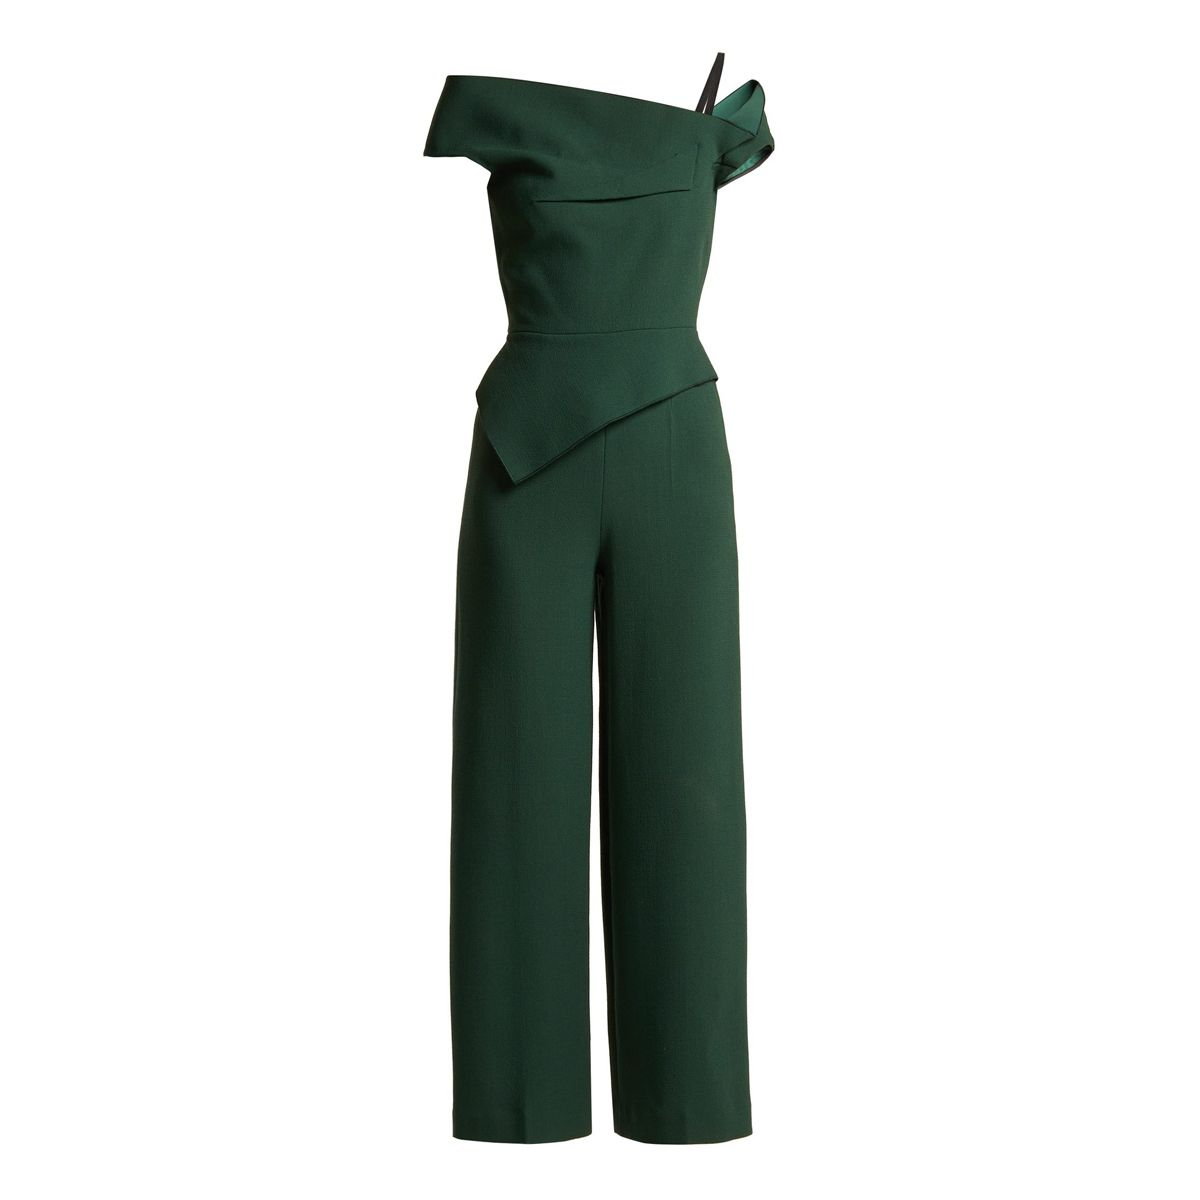 I Was a Diehard Dress Person Until I Saw These Party Jumpsuits images